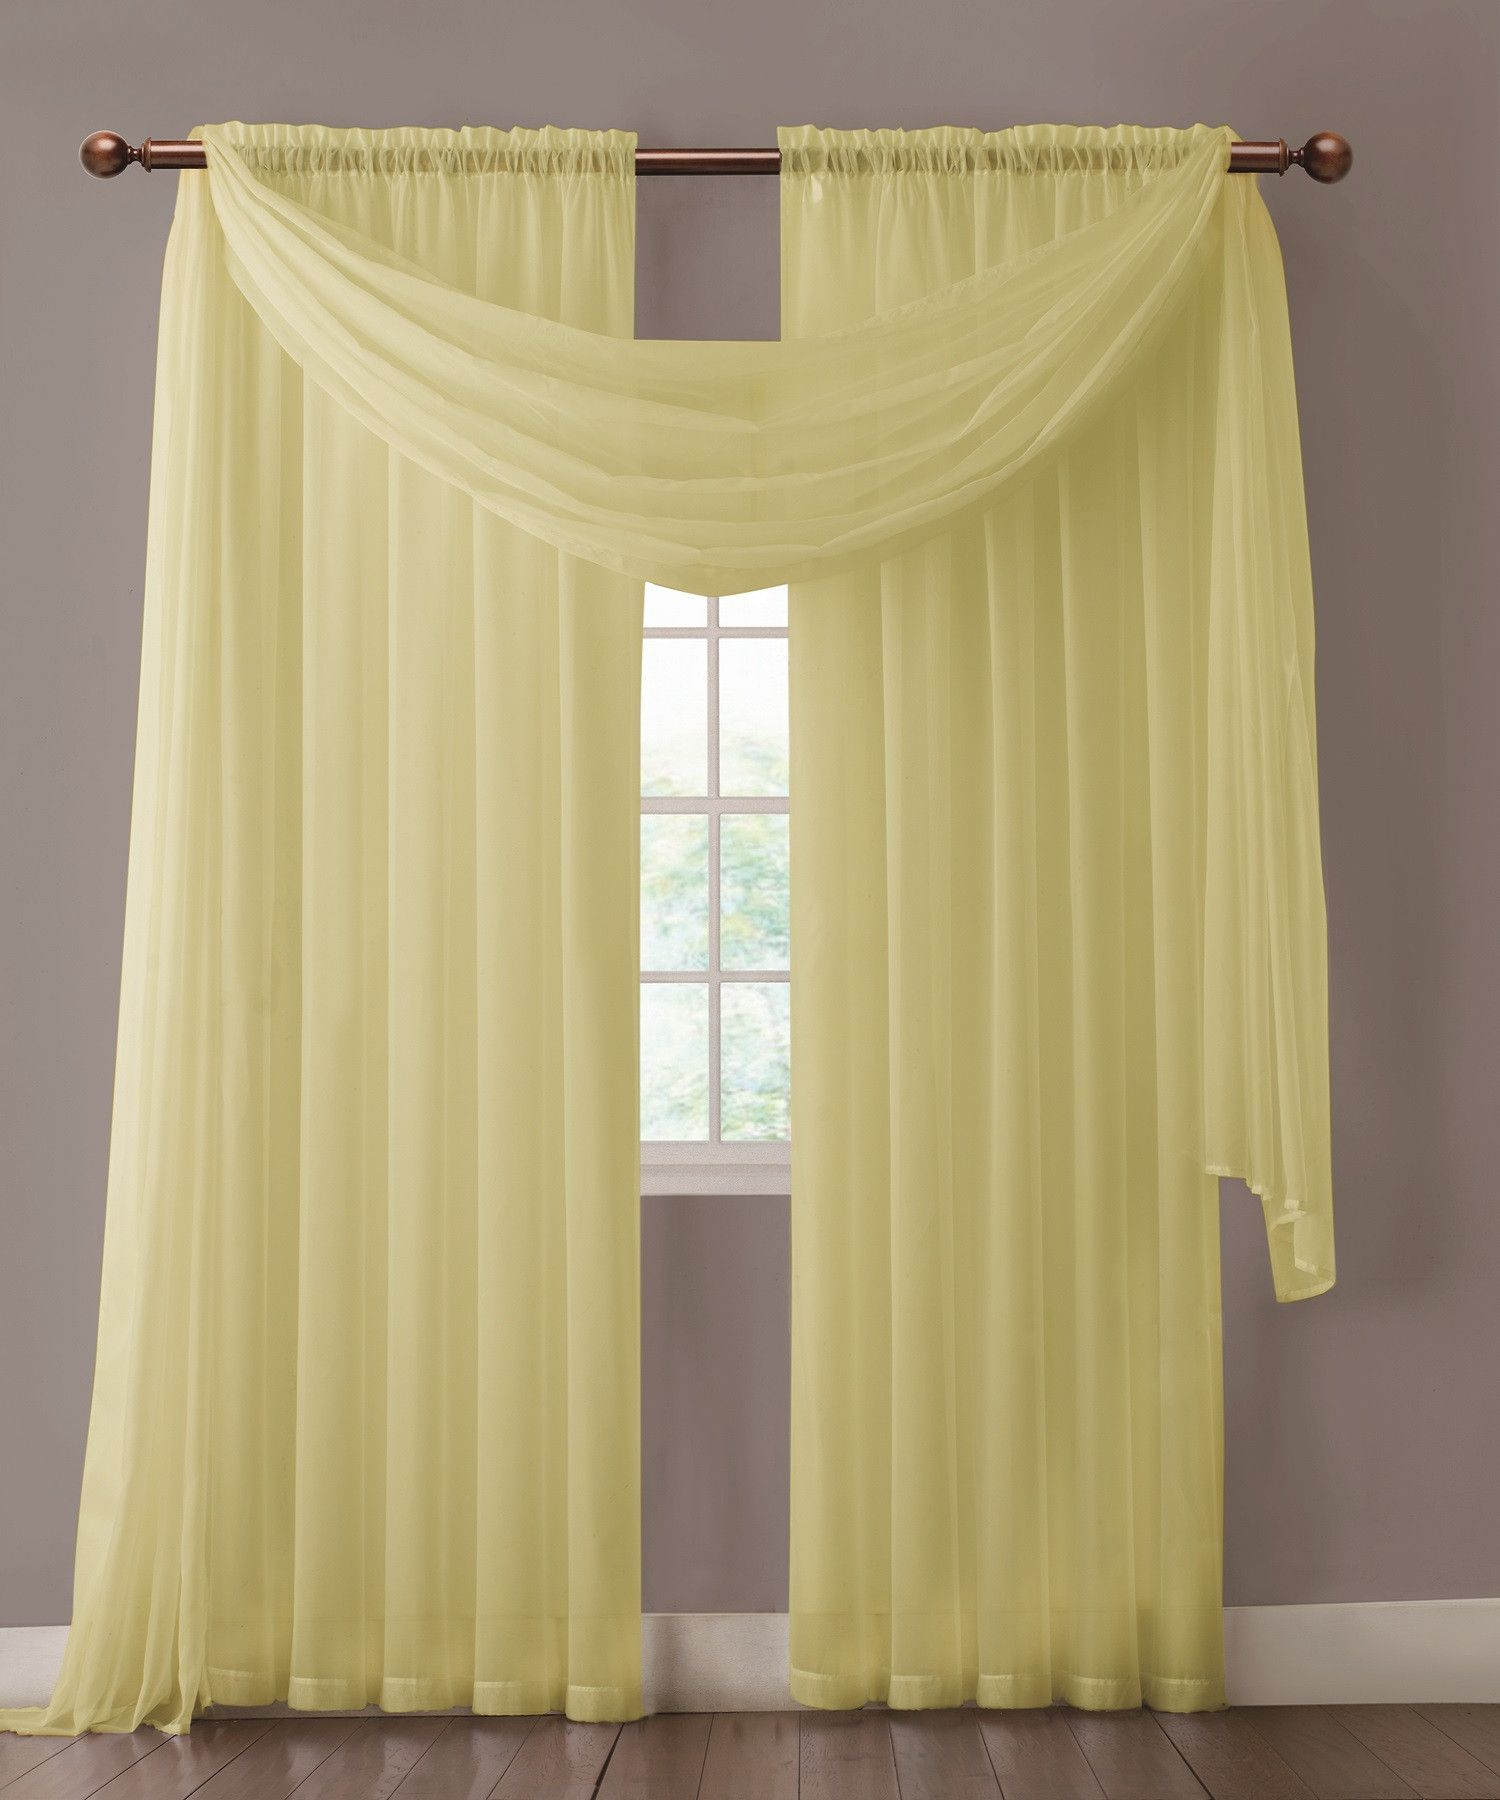 Warm Home Designs Pair Of Light Yellow Sheer Curtains Or Scarf